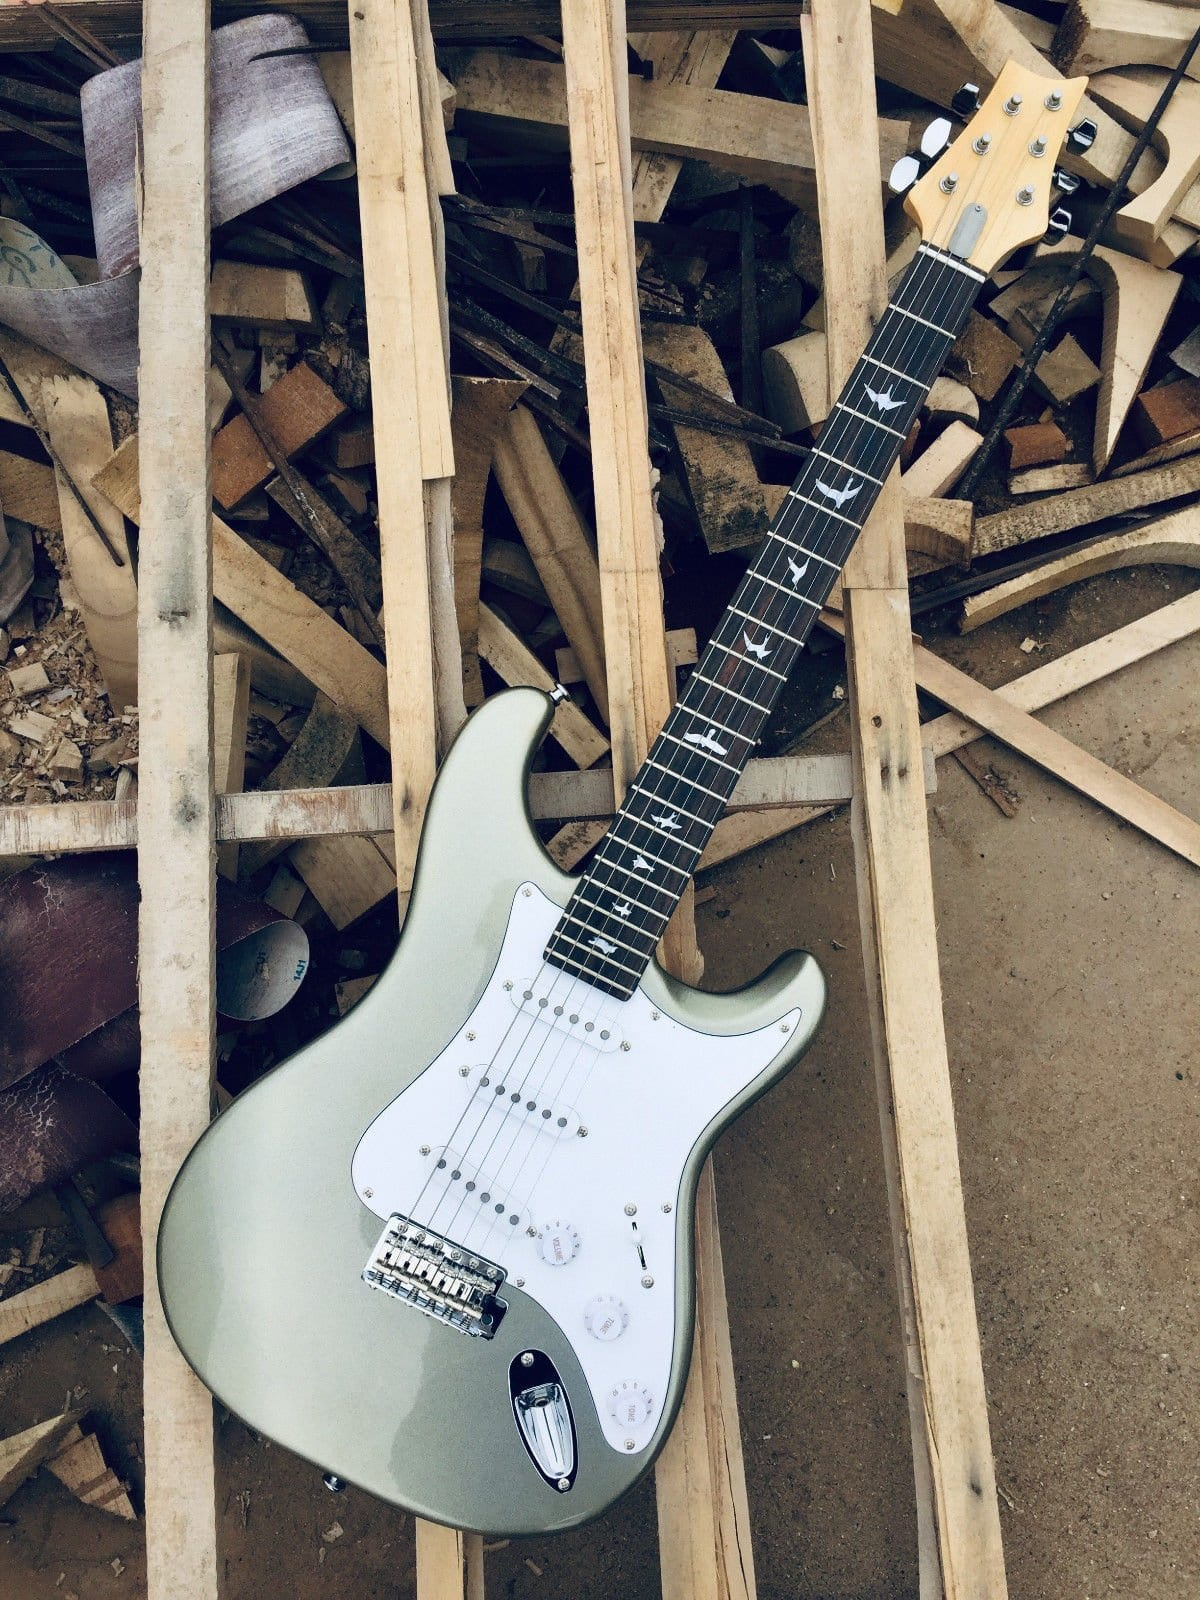 How To Tell A Fake Prs John Mayer Silver Sky Guitar From